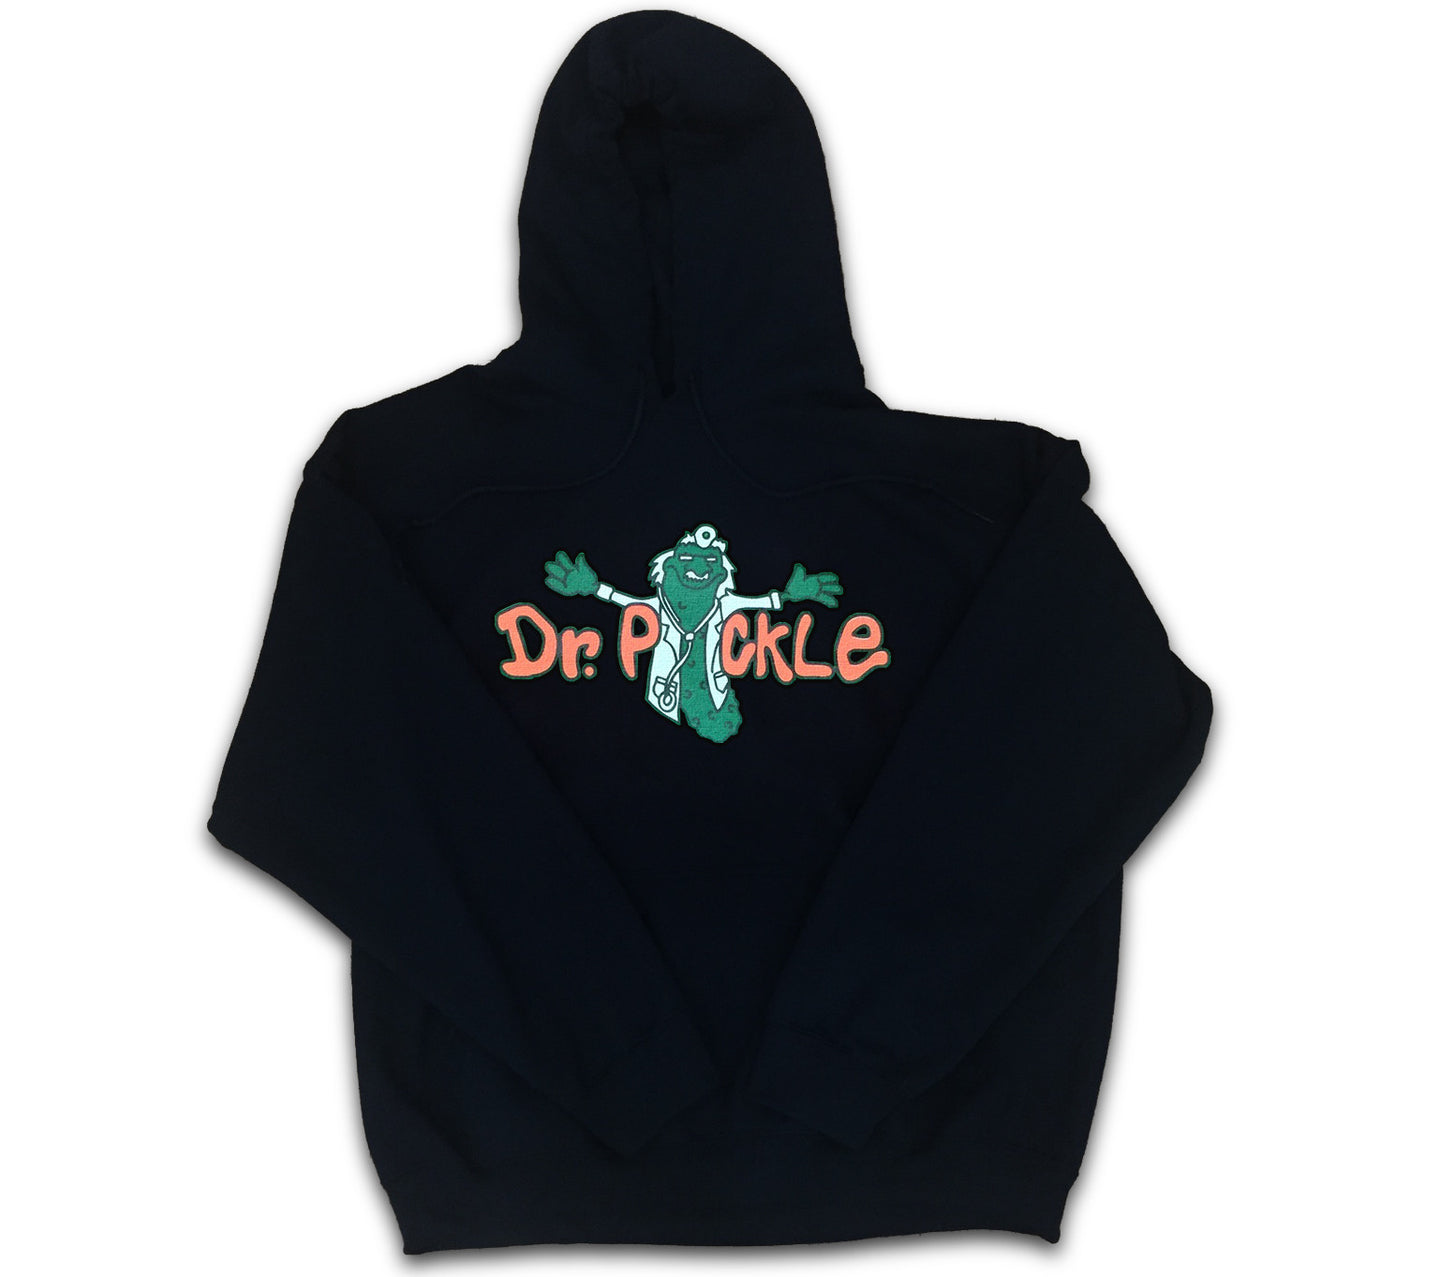 Dr. Pickle Throwback Logo Sweatshirt